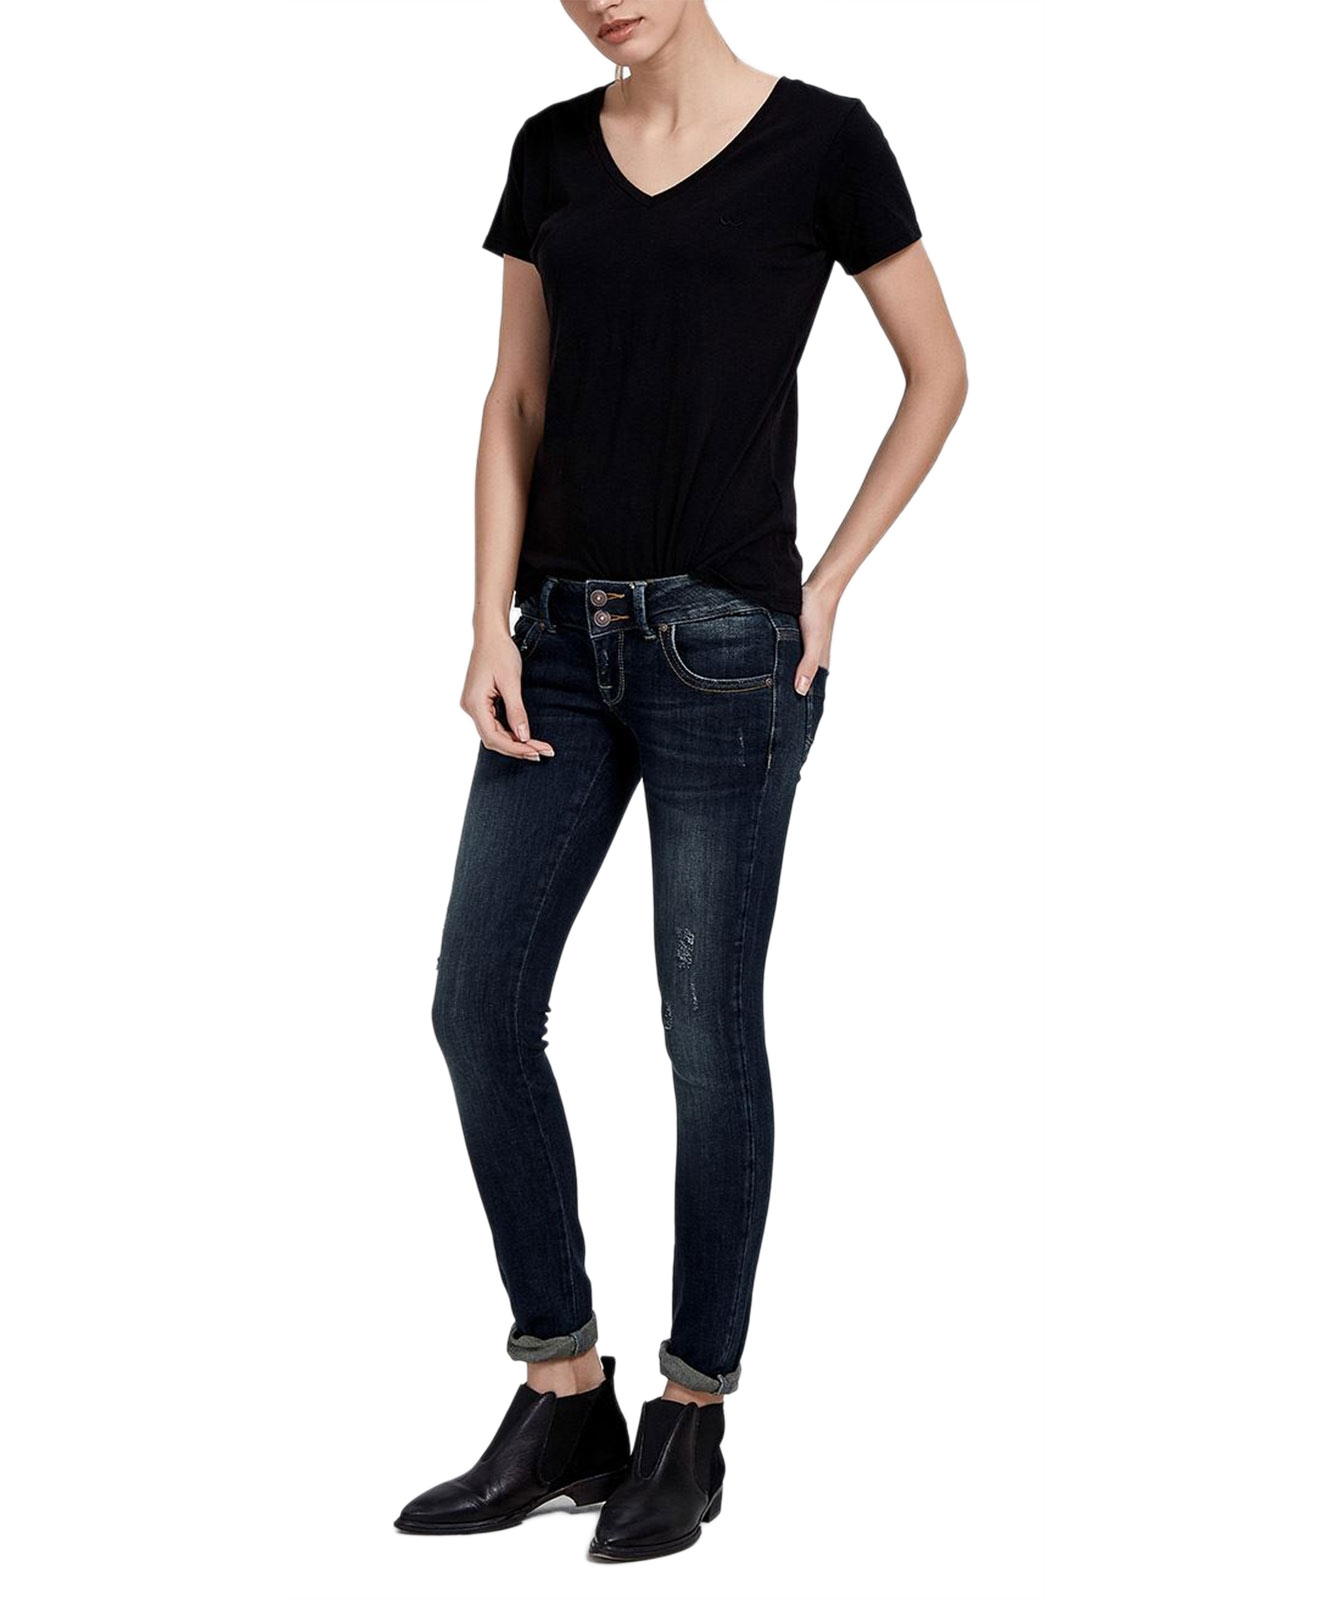 Hosen - LTB Jeans Röhre Molly in Oxford  - Onlineshop Jeans Meile